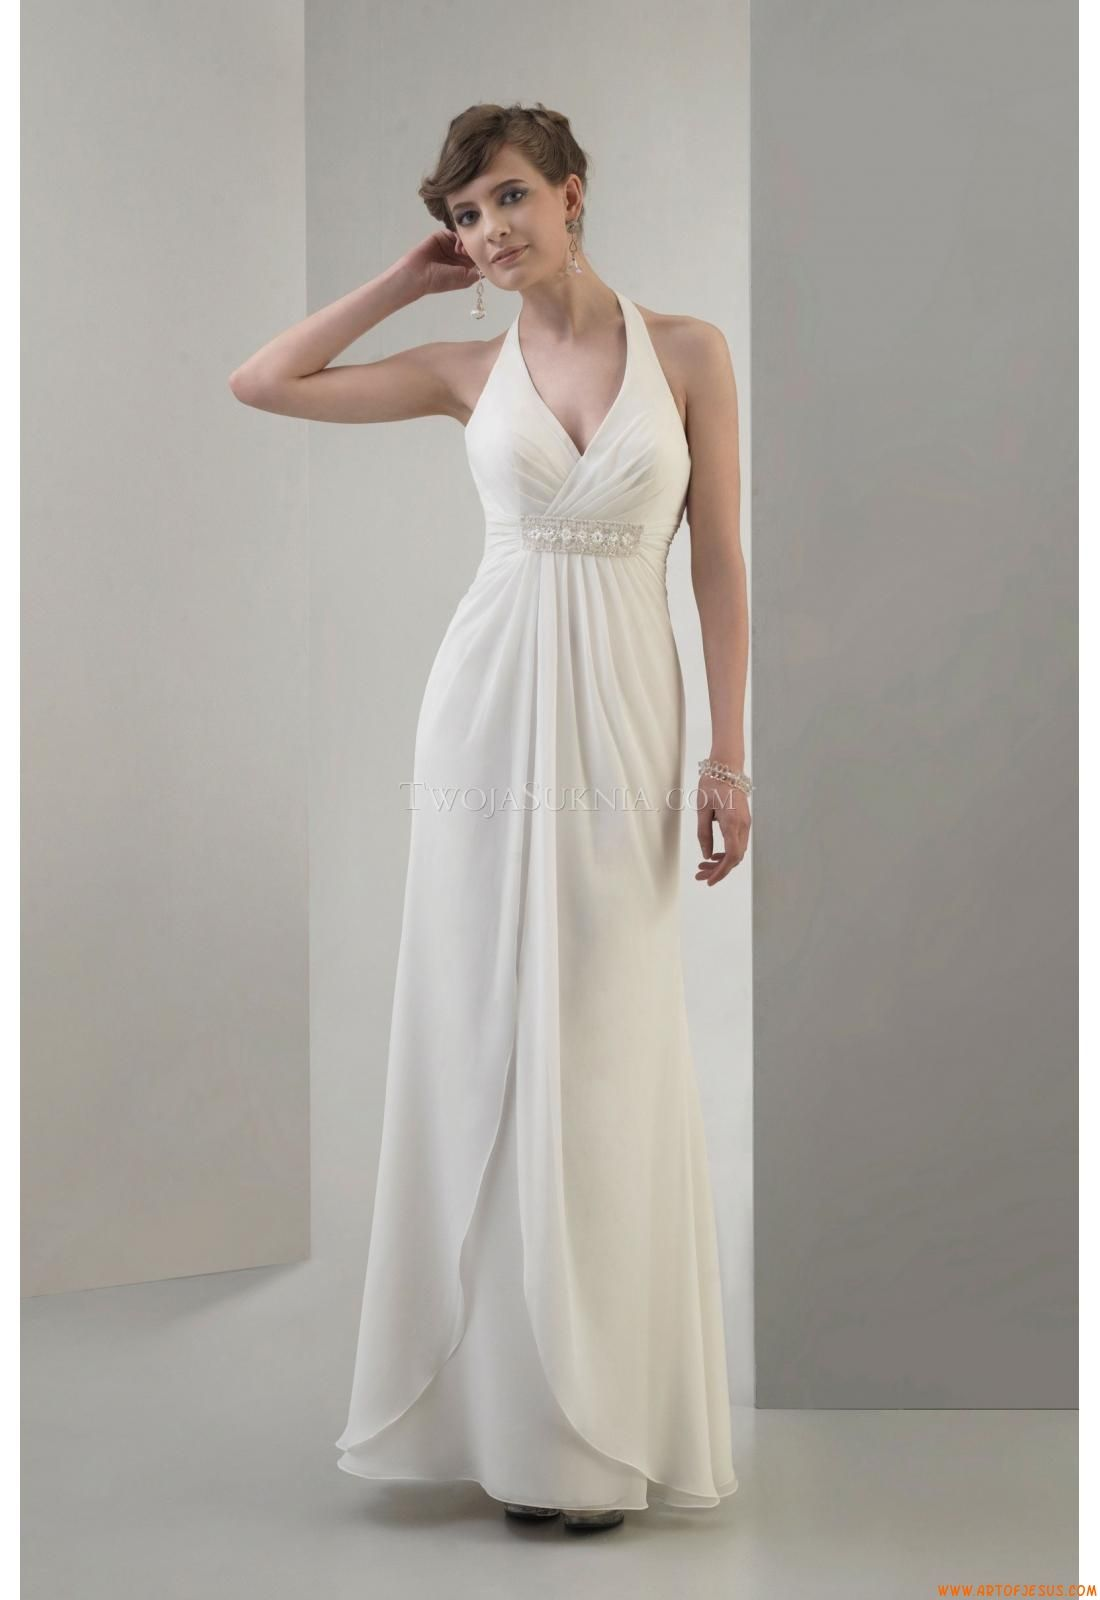 Elegant Halter Wedding Dress China Venus VN6679 Venus Informal 2011 ...